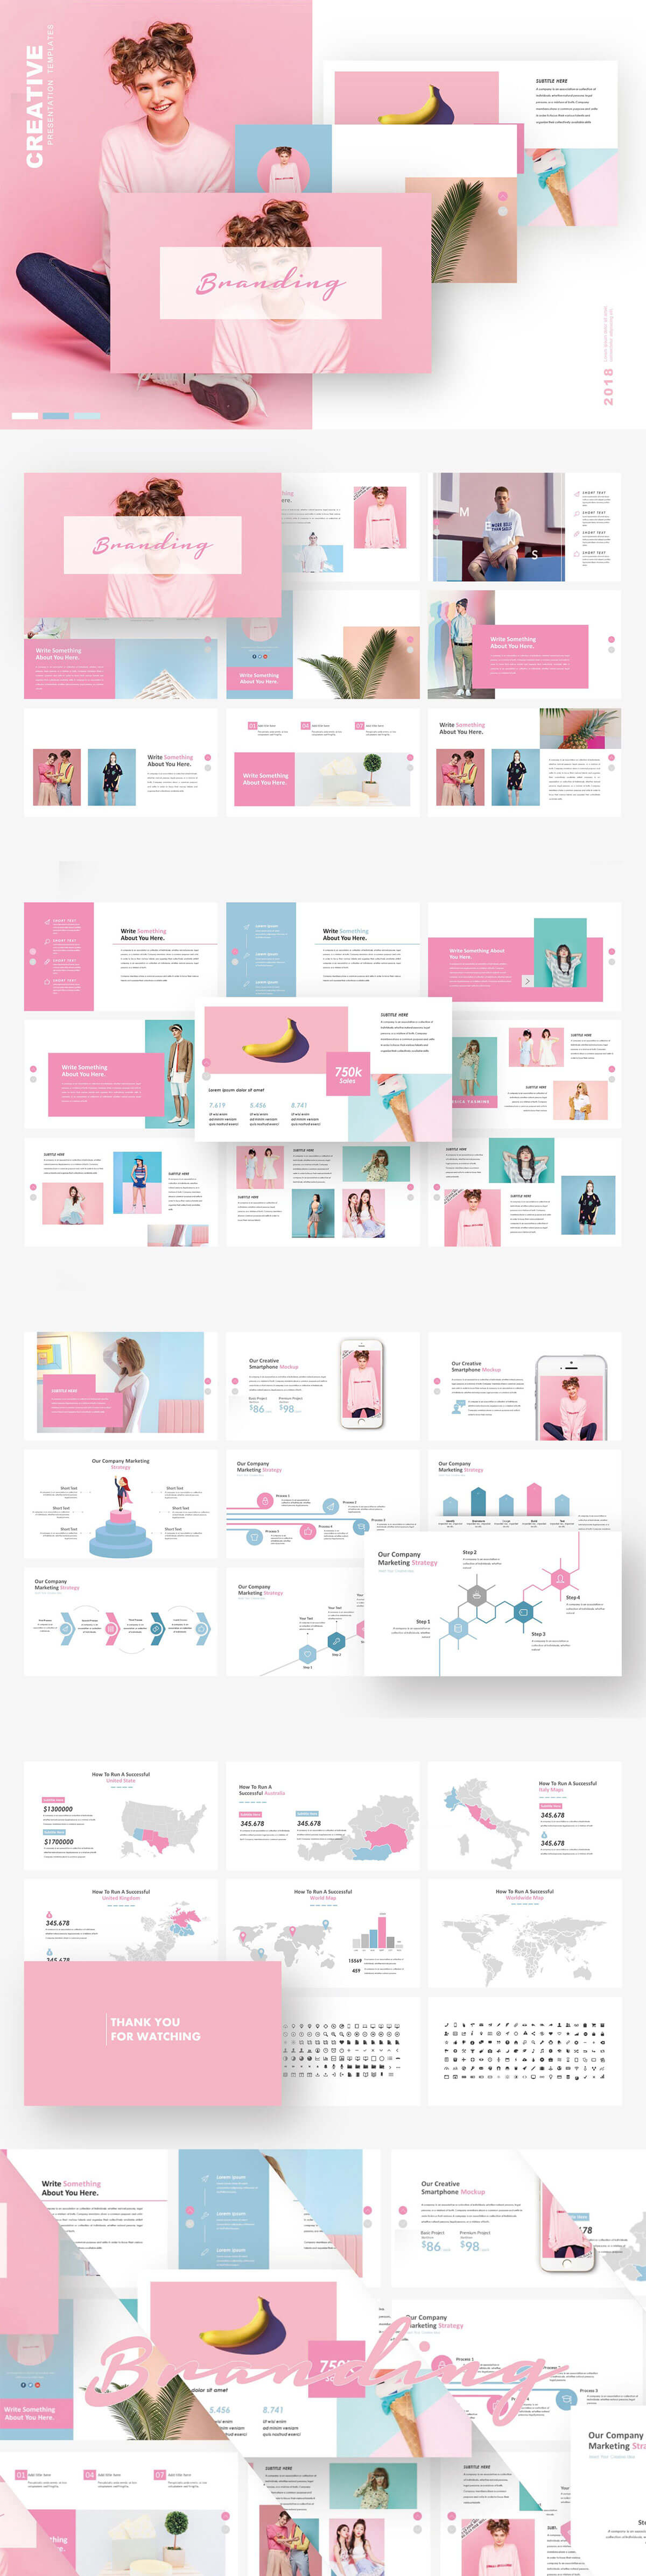 Free Branding PowerPoint Presentation Template